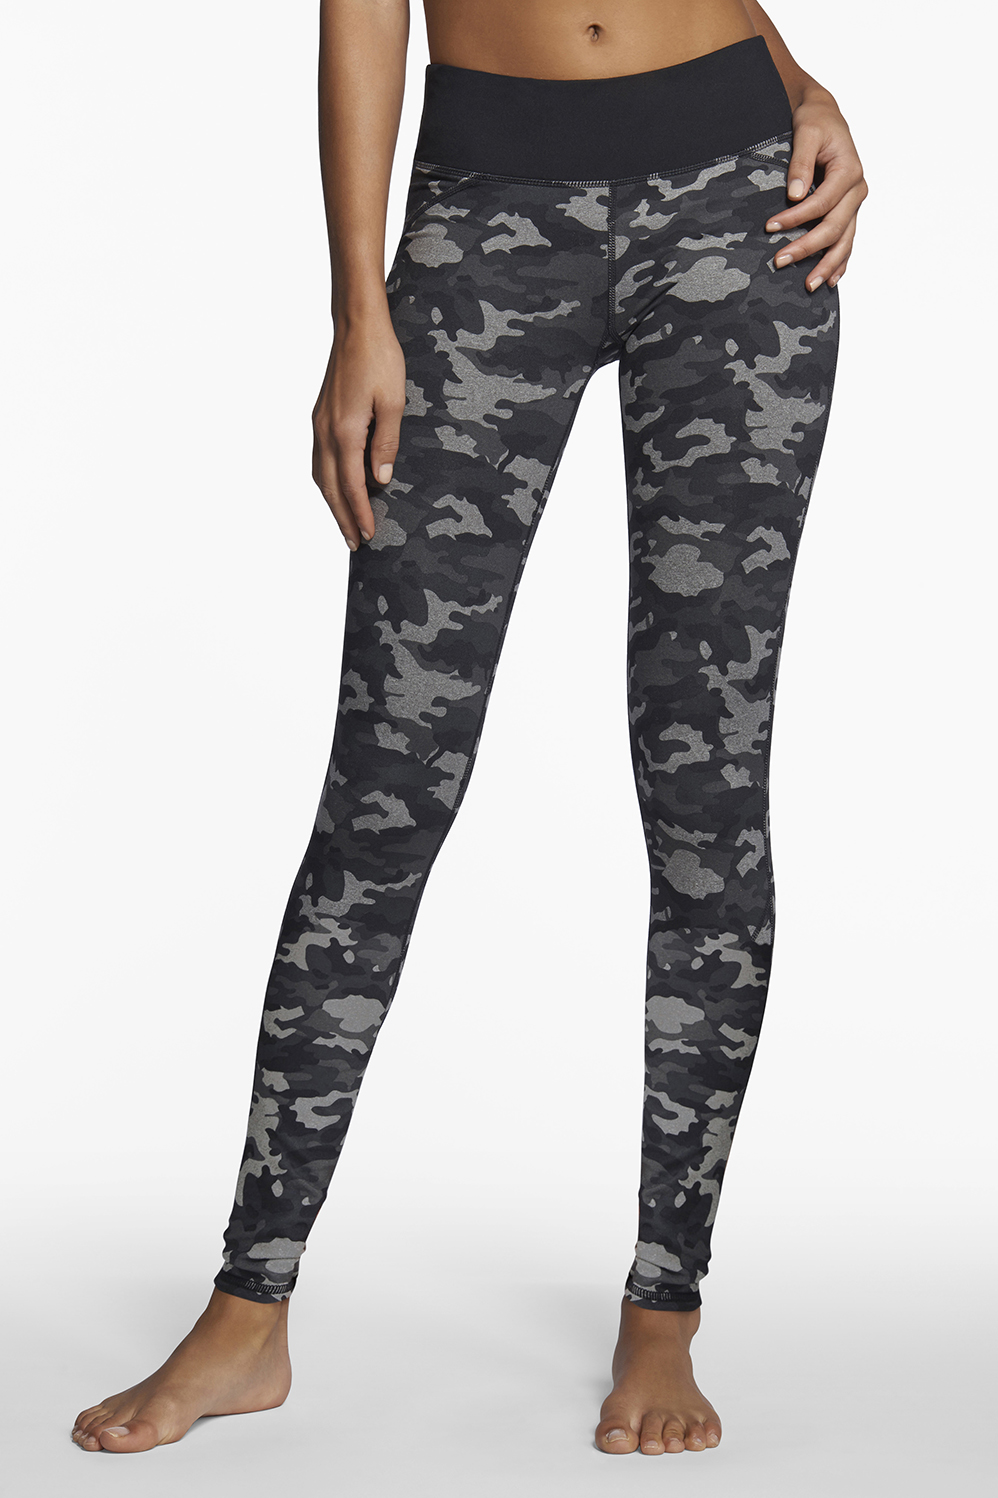 4b8db61dc1 Nadi Legging - Camo/Dark Grey